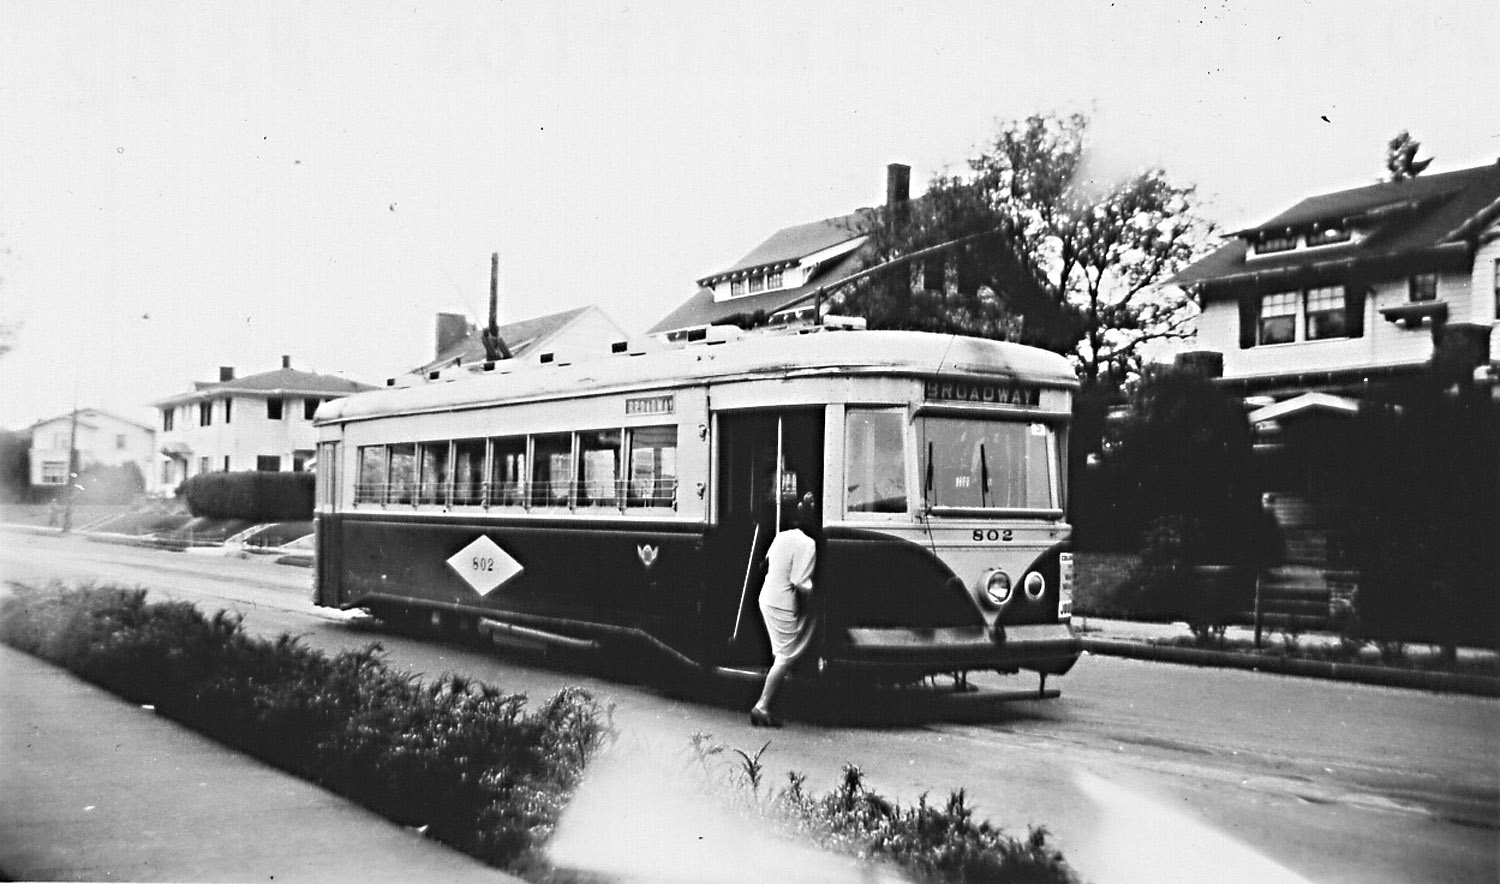 A Brill Master Unit at the north end of the Broadway Line,1949.